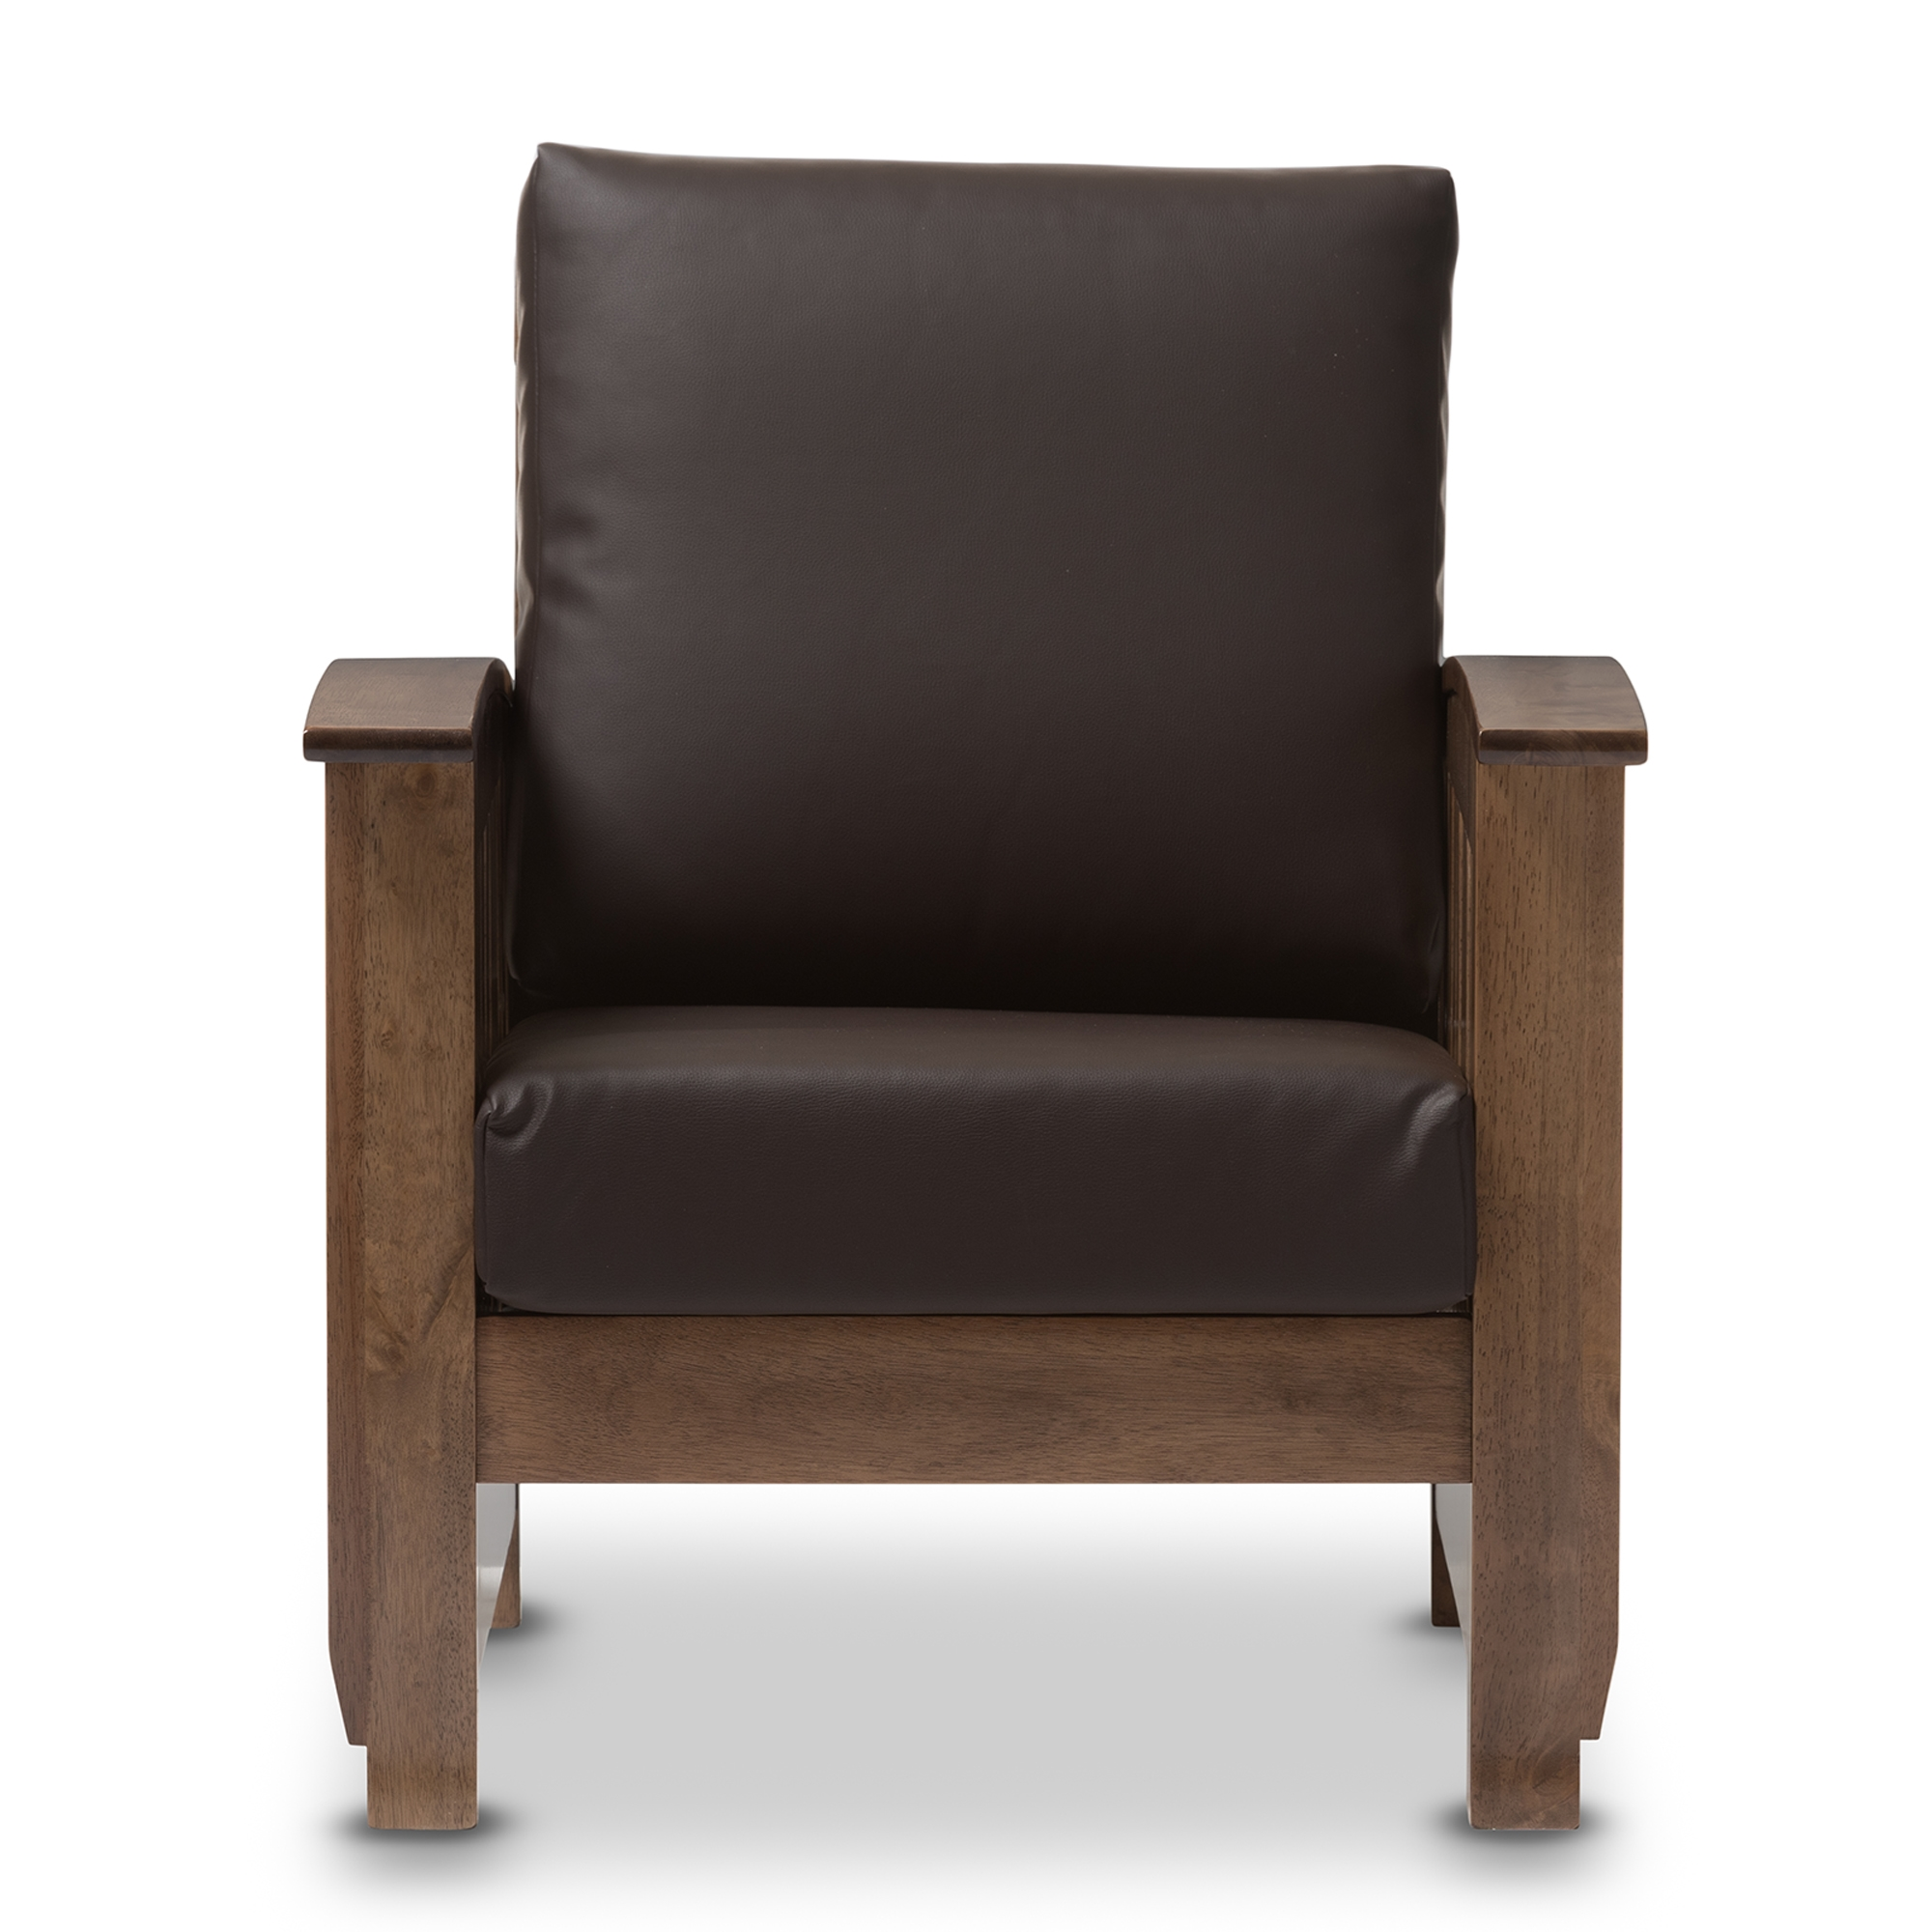 Bon Baxton Studio Charlotte Modern Classic Mission Style Walnut Brown Wood And  Dark Brown Faux Leather 1 Seater Lounge Chair